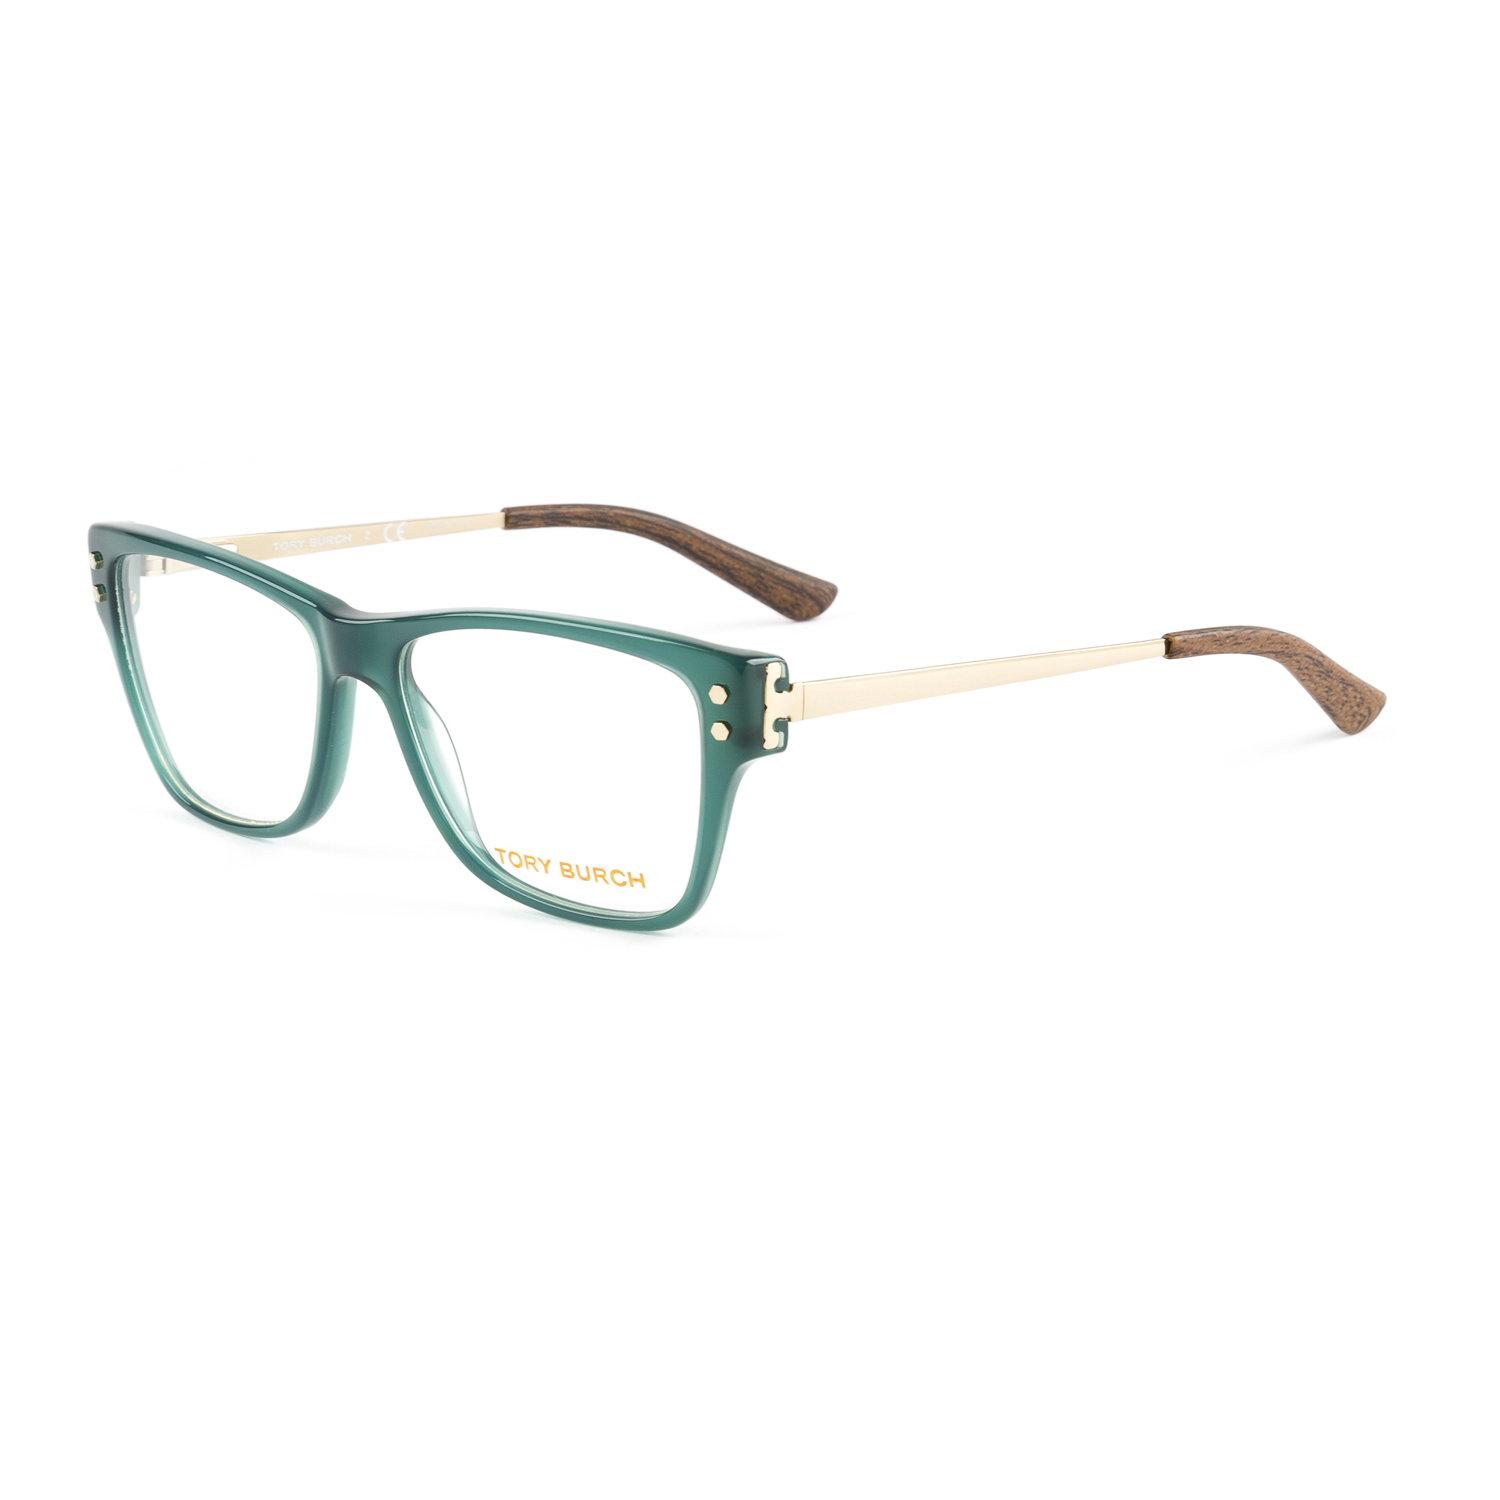 Burch tory launches eyewear recommendations dress for autumn in 2019